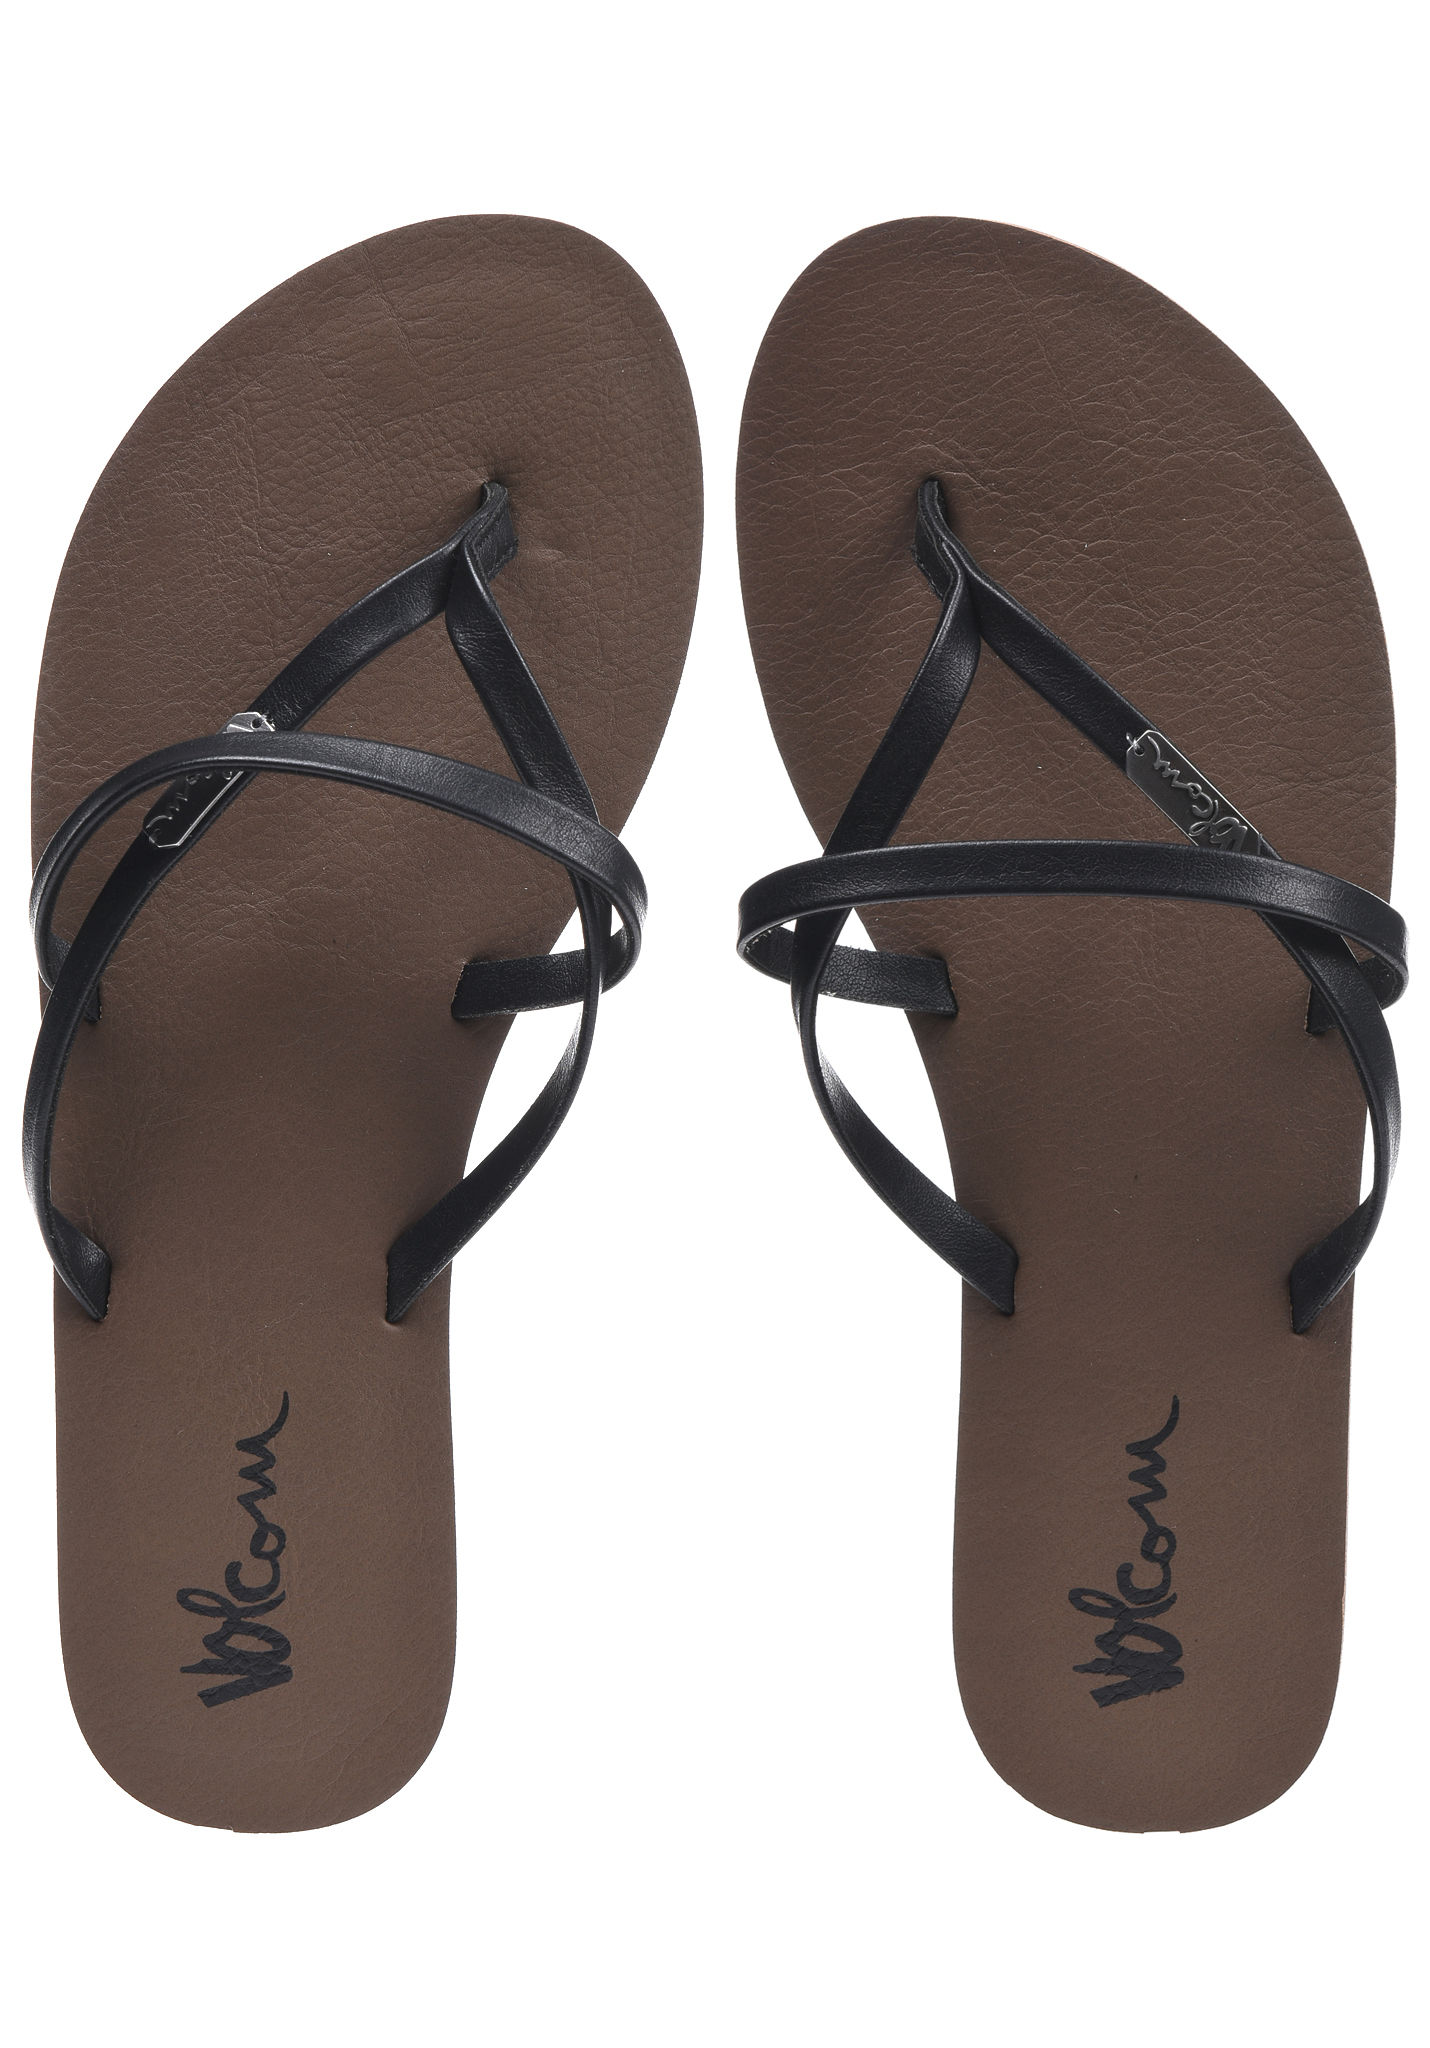 Volcom All Night Long - Sandals for Women - Black - Planet Sports 5a01a8f102